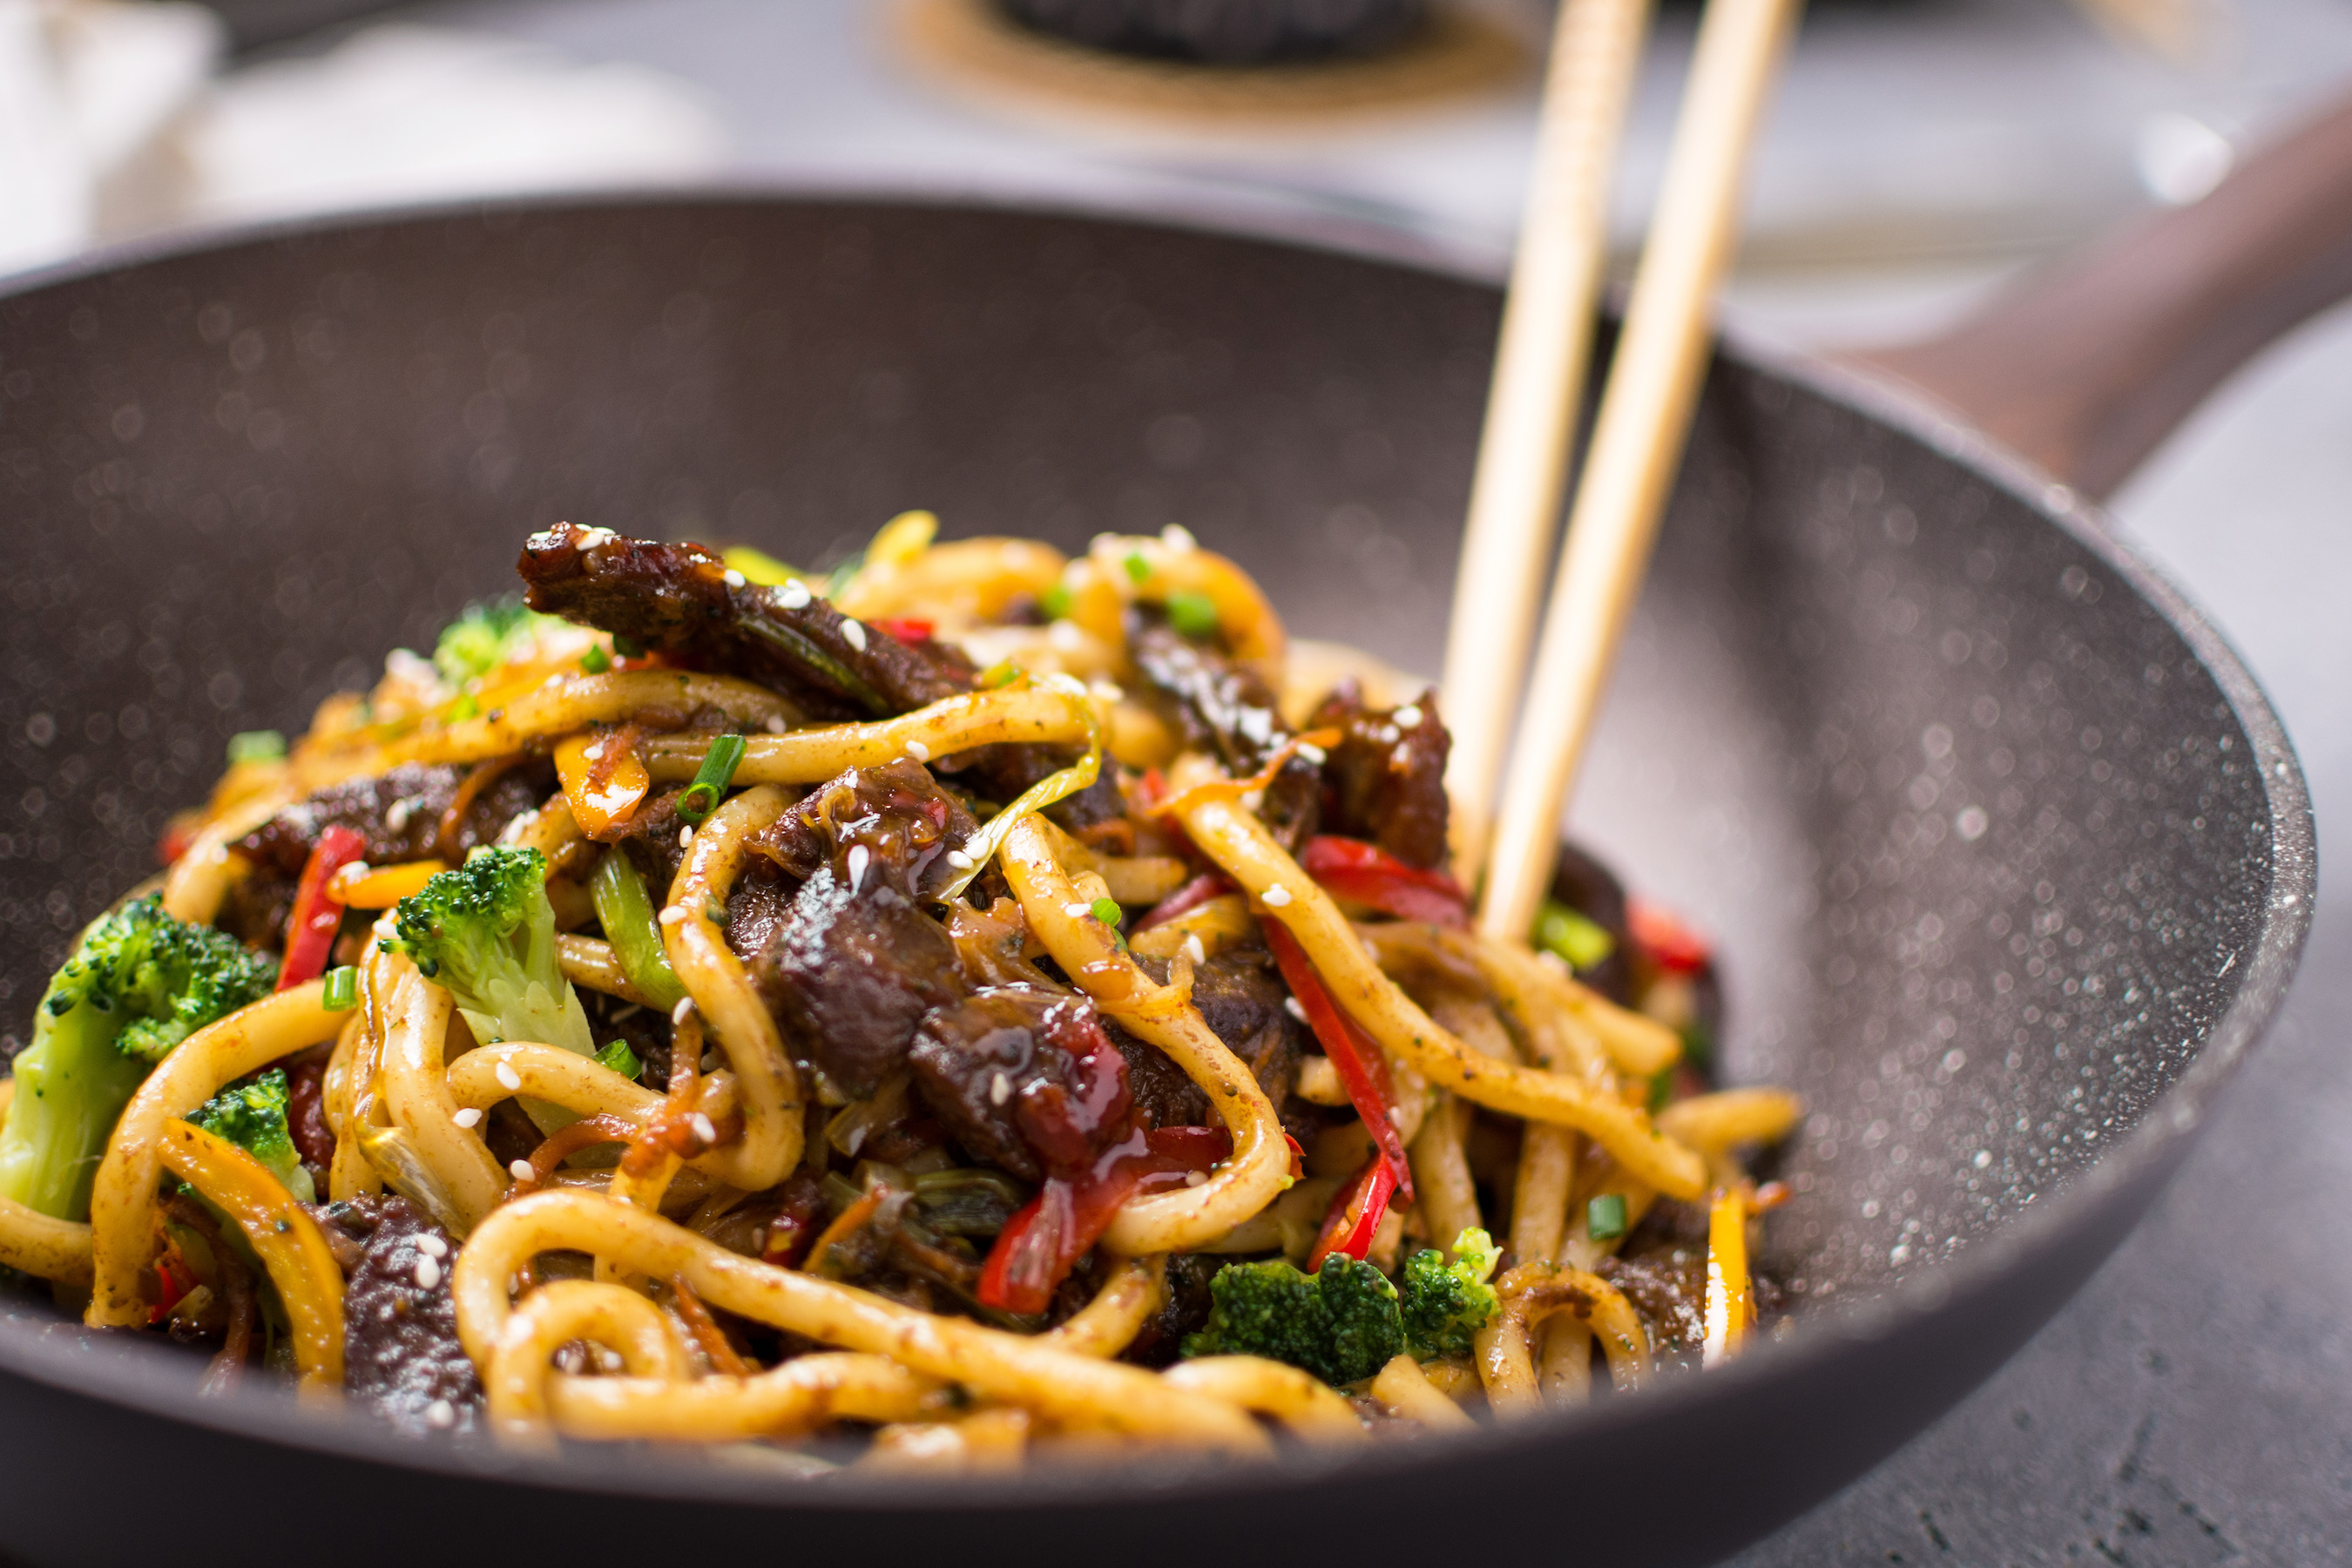 Udon Stir-Fry Noodles with Beef and Vegetables